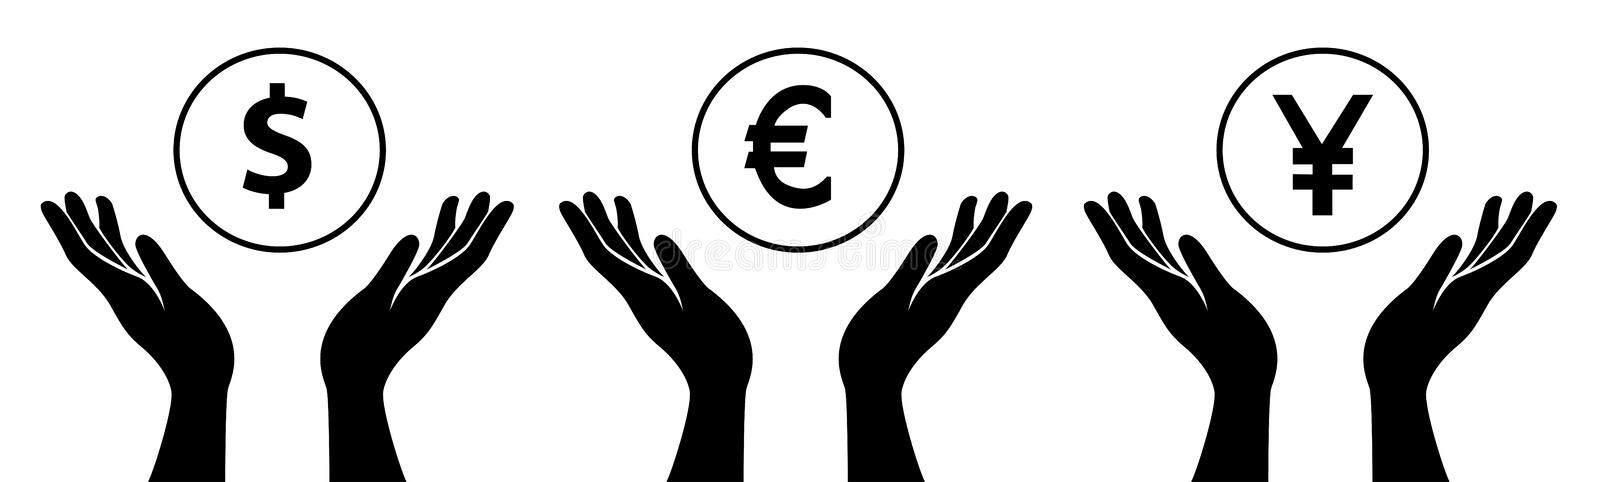 Hands hold the money stock illustration